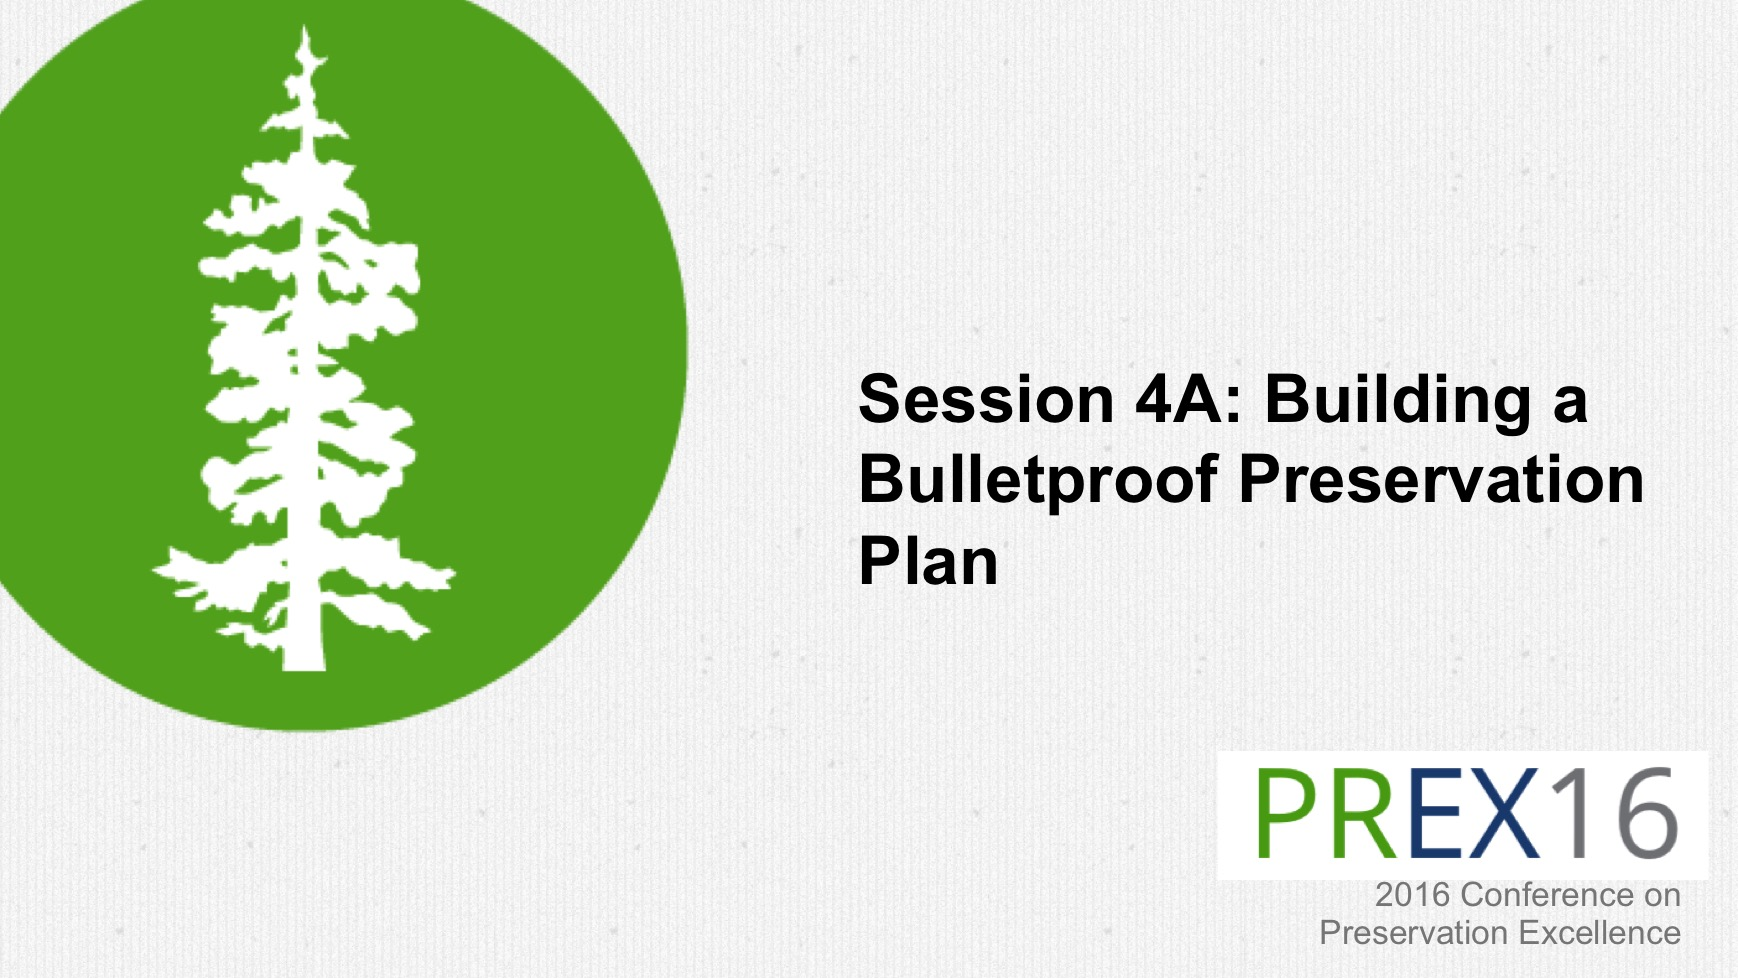 Session 4A: Building a Bullet-Proof Preservation Plan